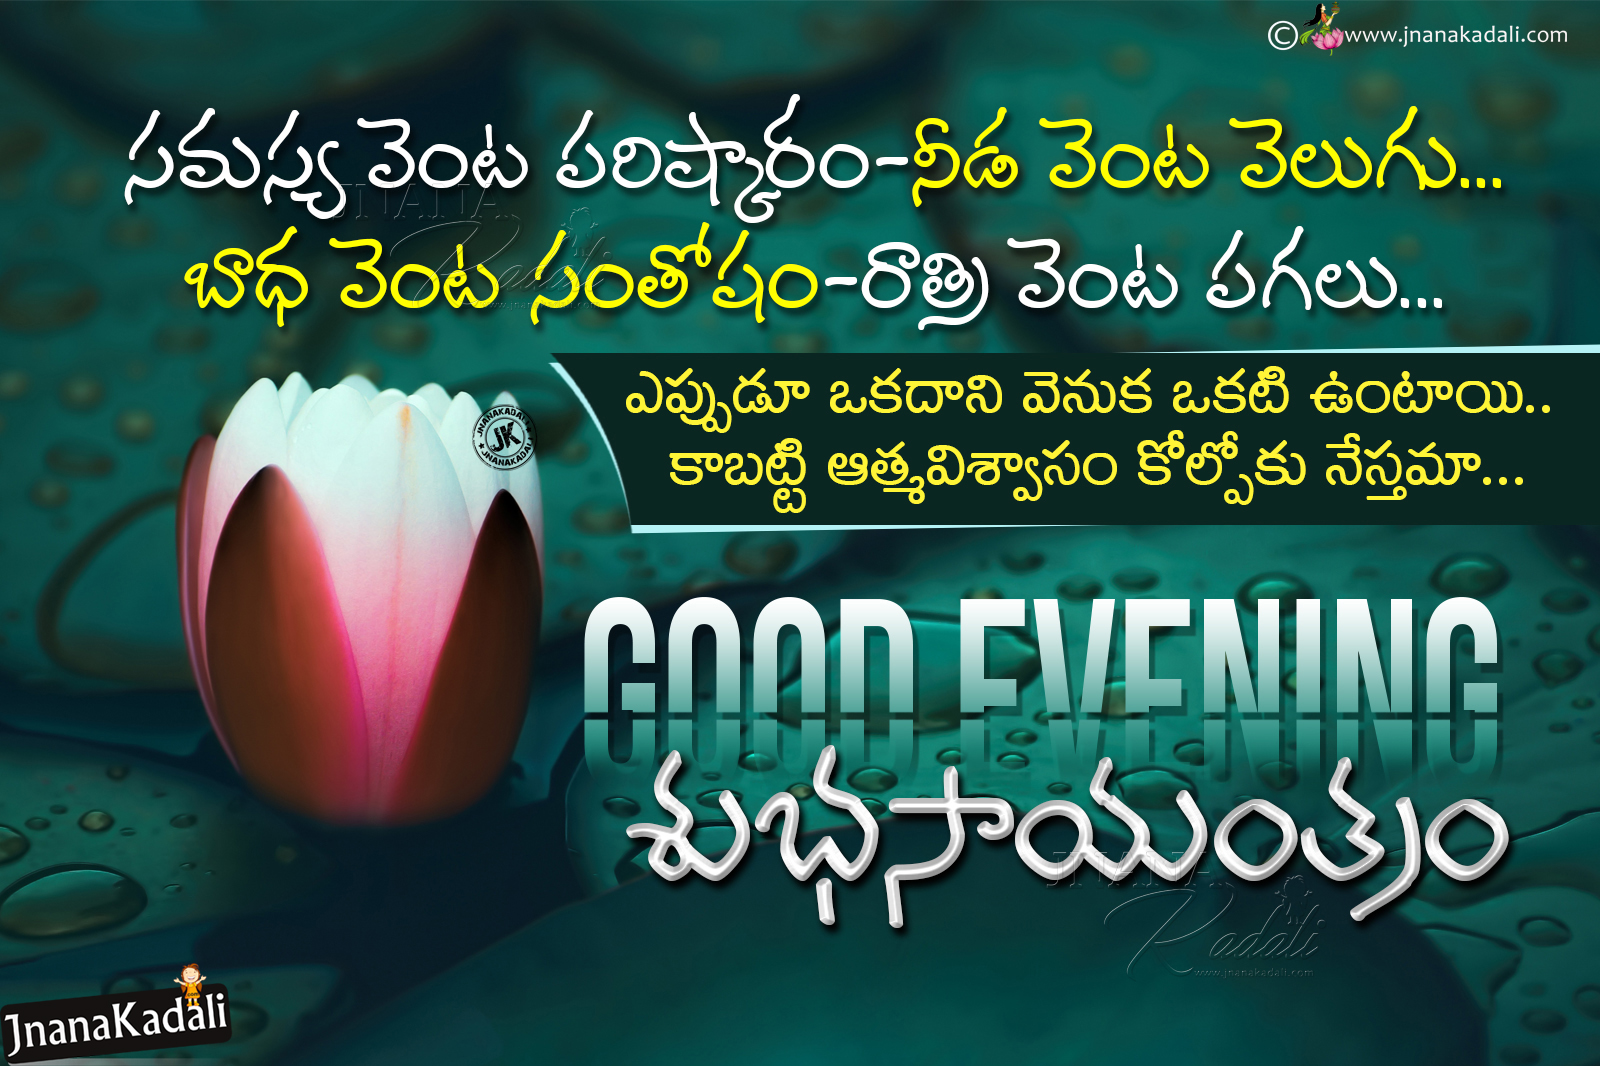 Inspirational Thoughts About Life Best Sayings About Life Success In Telugutelugu Subhasayantram